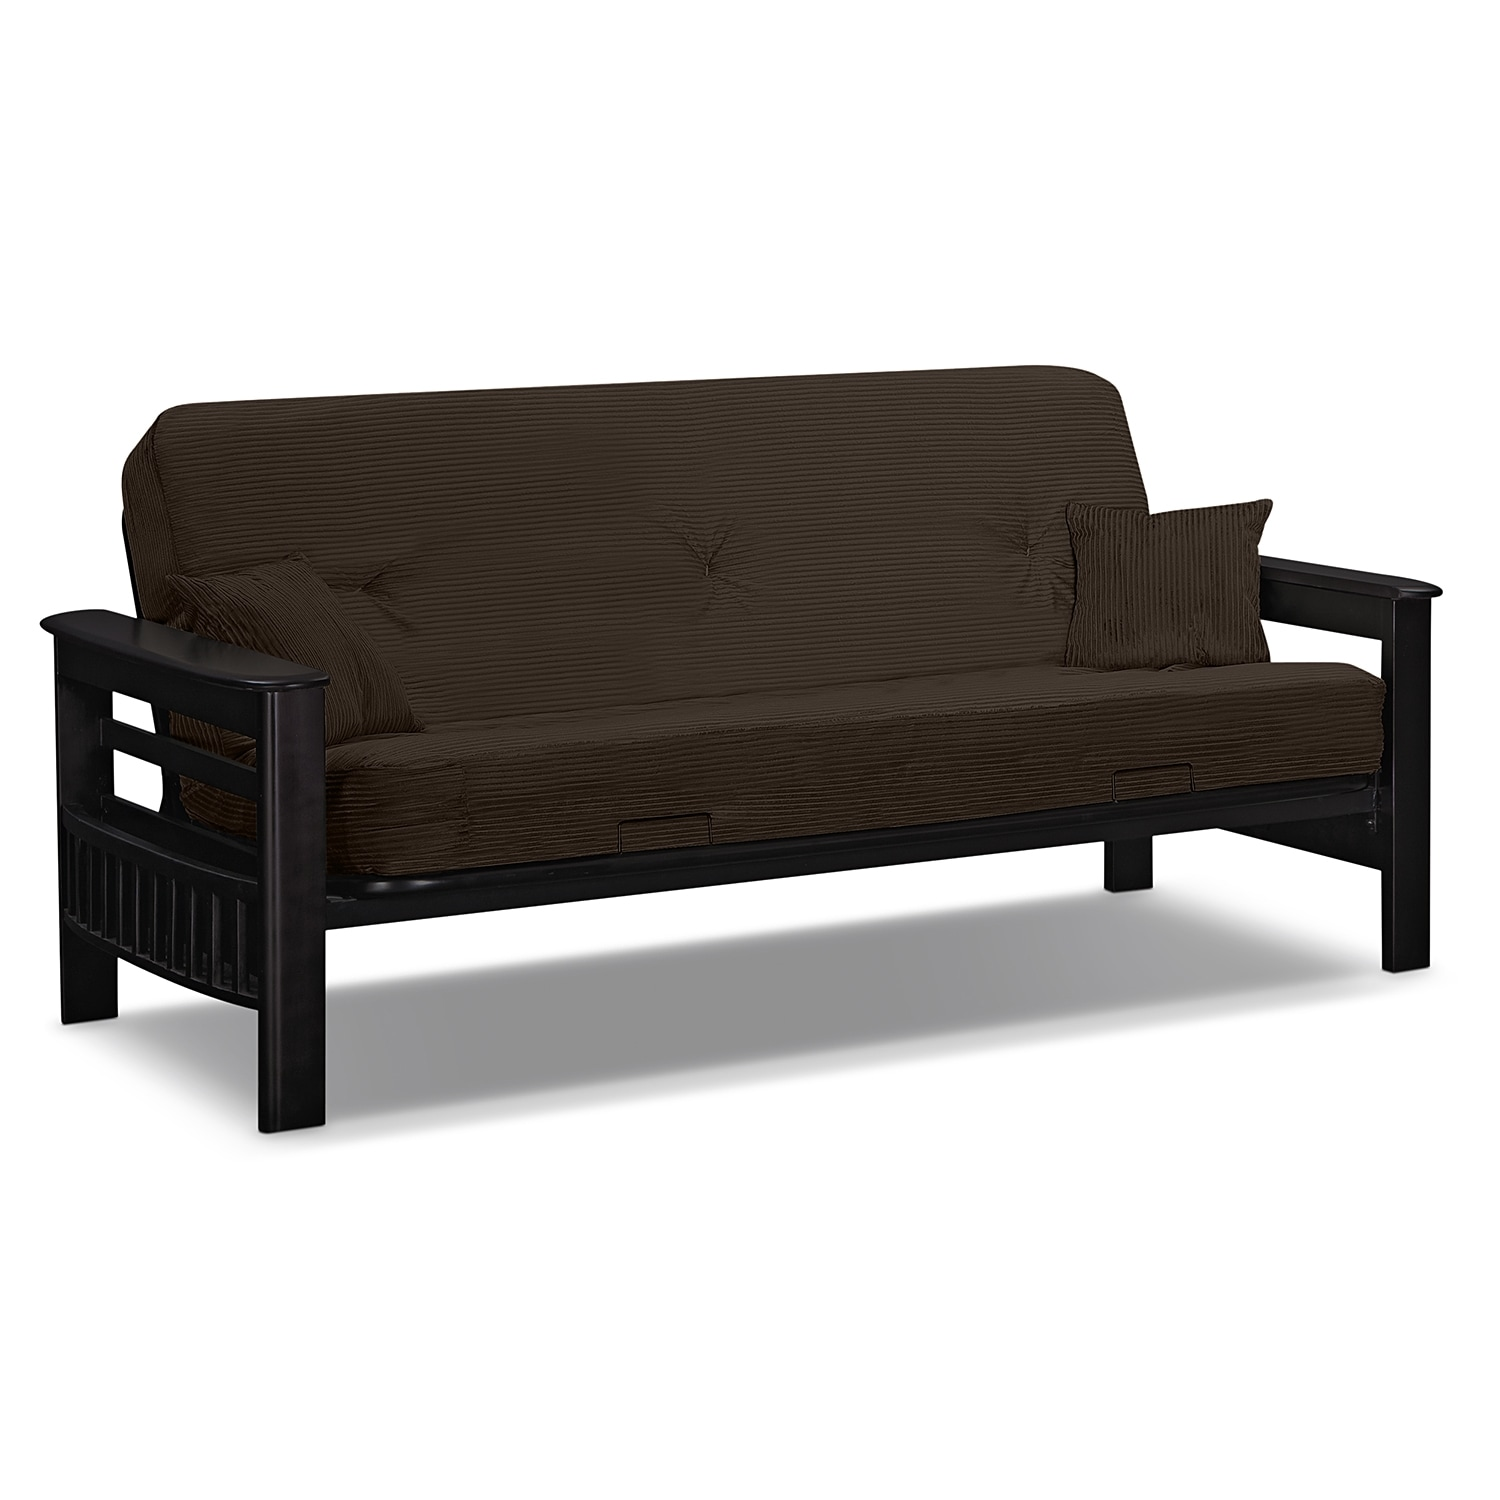 Living Room Furniture - Tampa Futon Sofa Bed